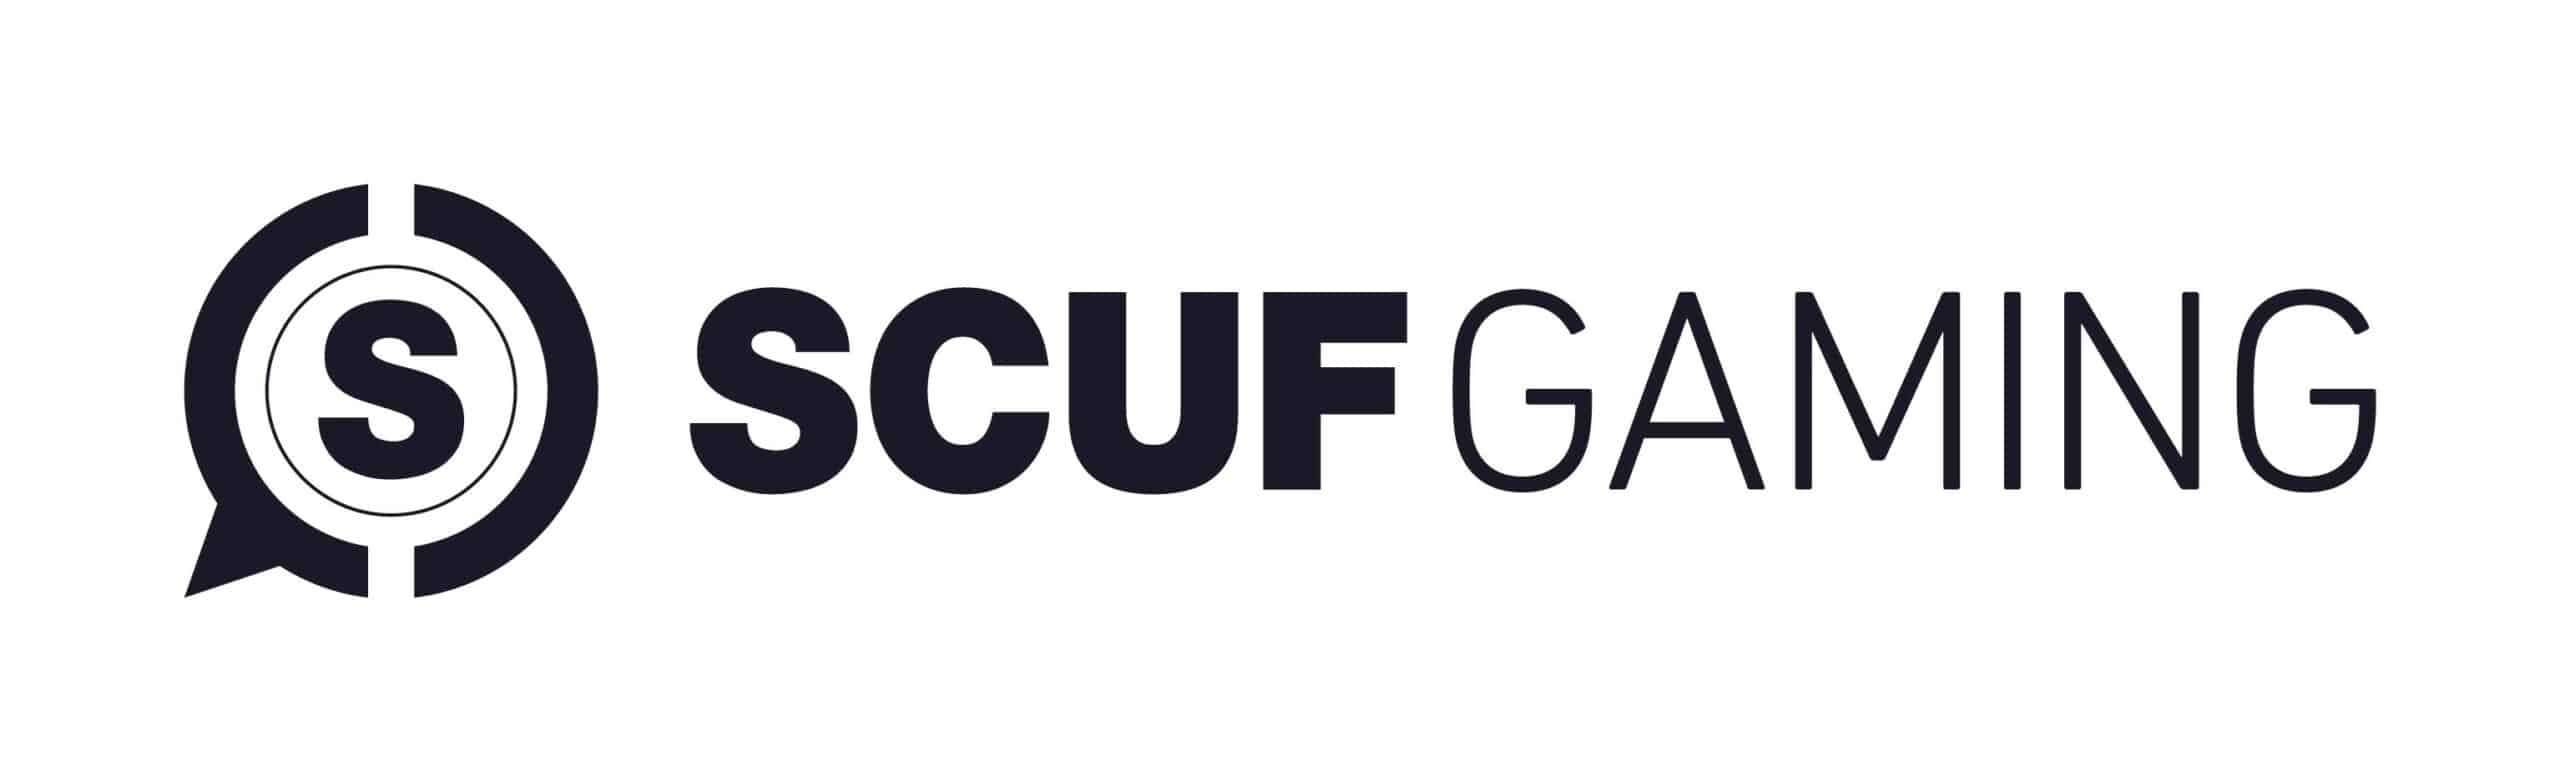 Gamepad Maker Scuf Gaming Exposes 1 1 Million Customer Records On The Web Without A Password Comparitech